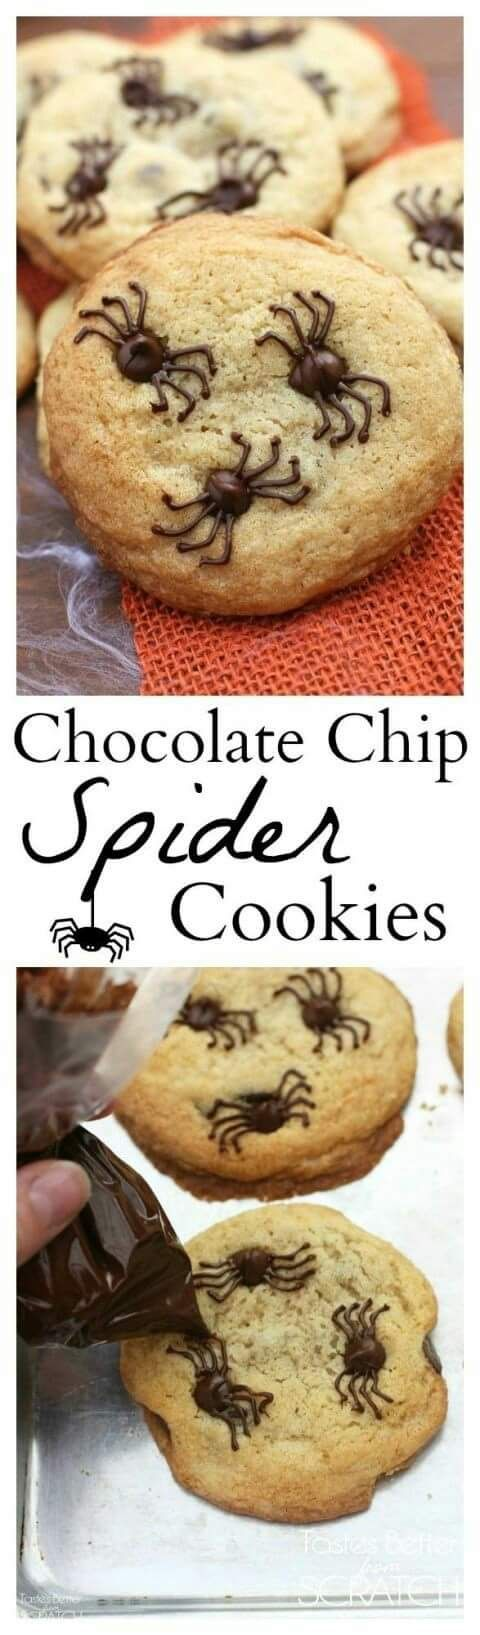 Chocolate chip spider cookies. Just make sure to add chocolate chips to the very top.